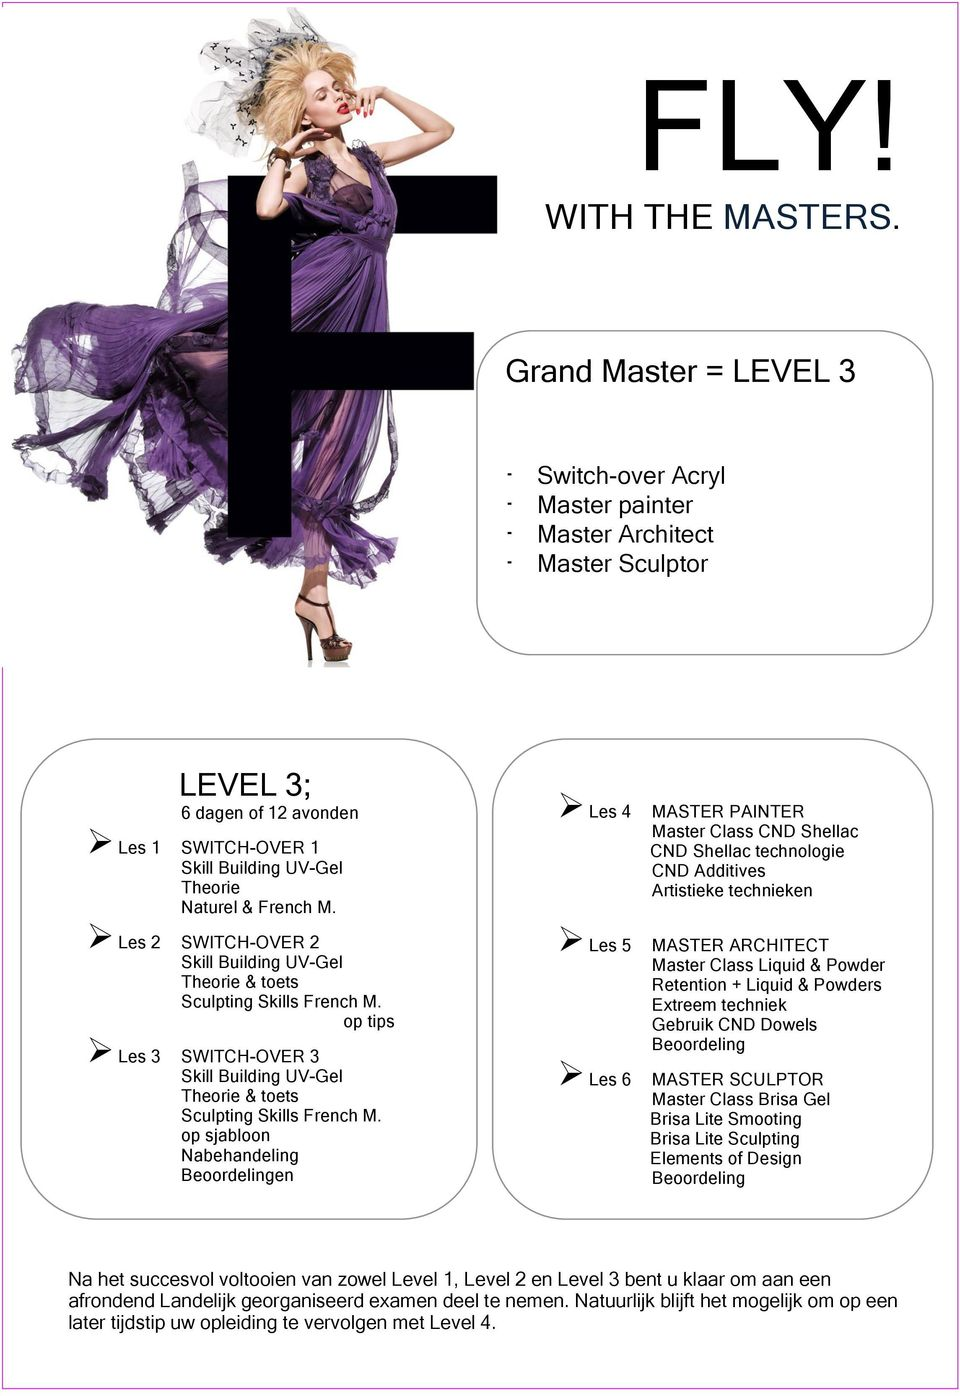 Les 2 SWITCH-OVER 2 Skill Building UV-Gel Sculpting Skills French M. op tips Les 3 SWITCH-OVER 3 Skill Building UV-Gel Sculpting Skills French M.